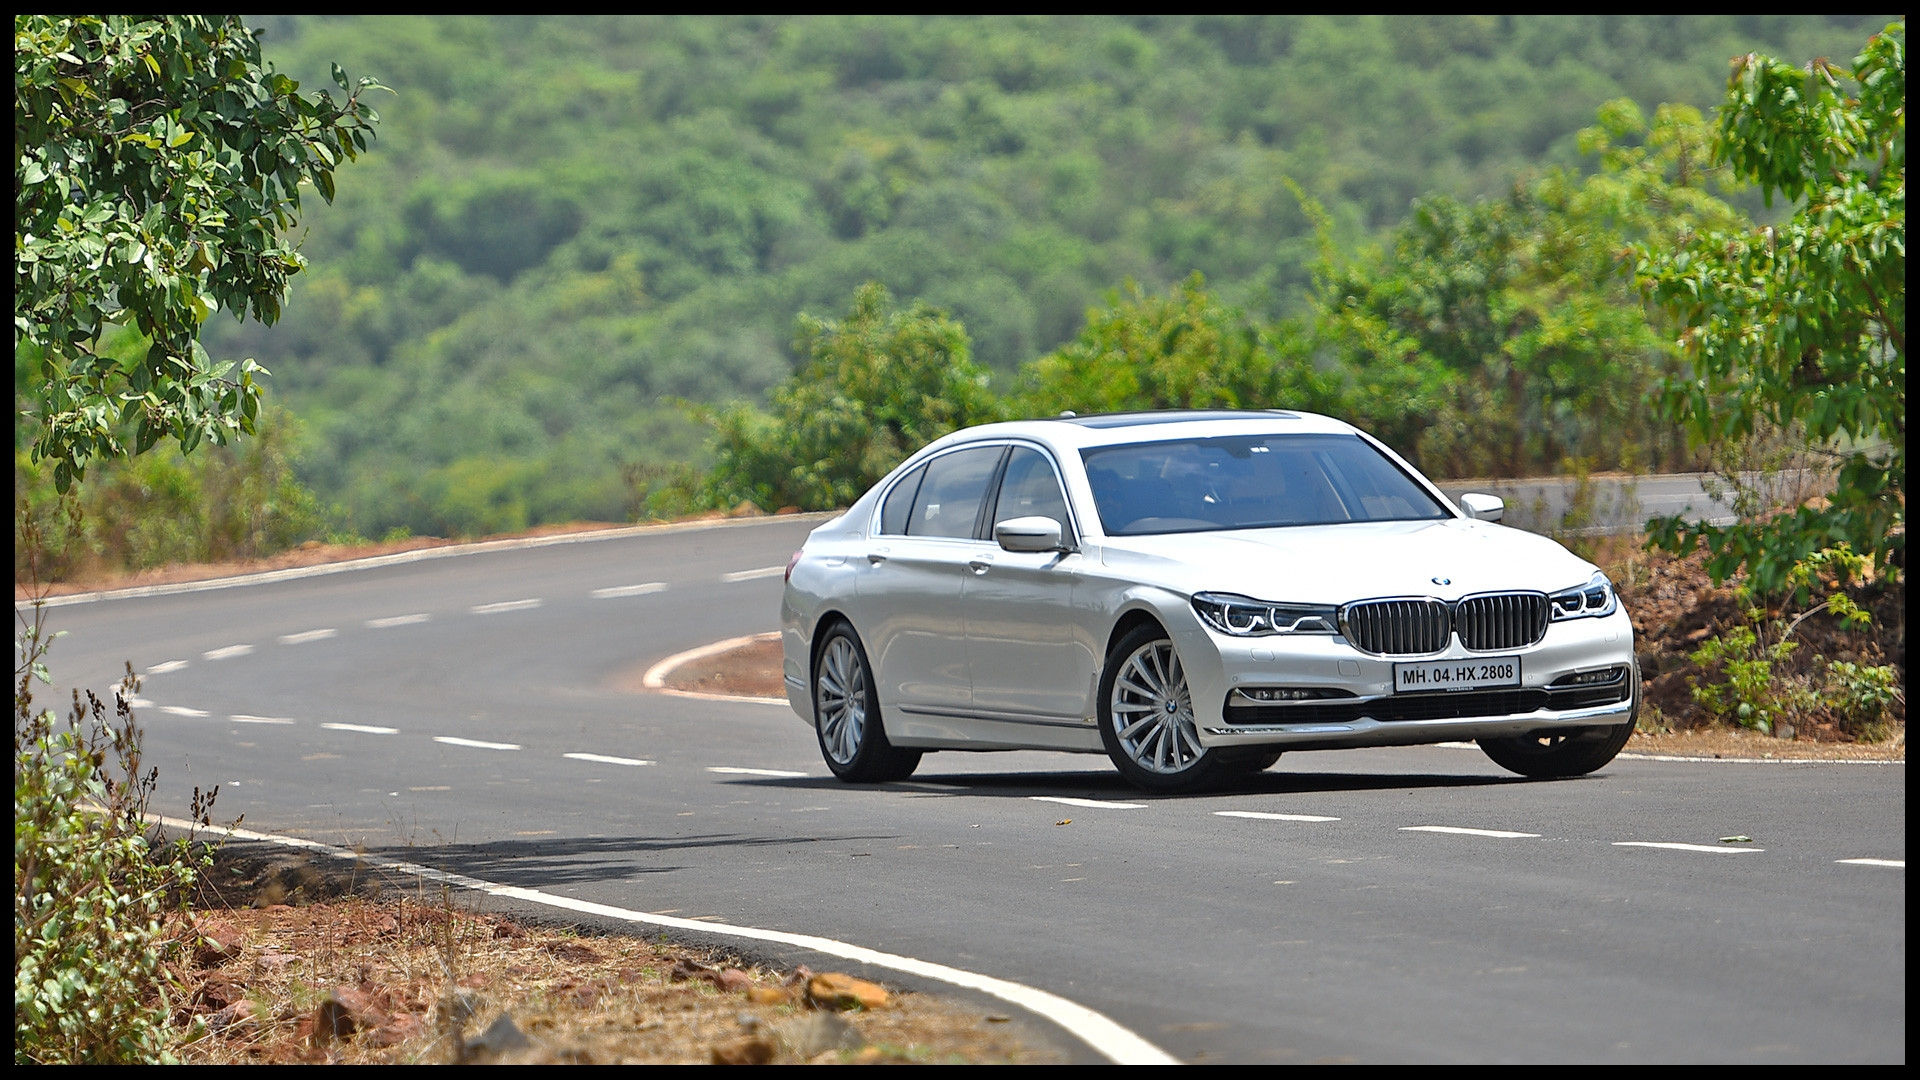 Bmw 7 Series 2017 Price Mileage Reviews Specification Gallery Cool Bmw 740i Wallpaper